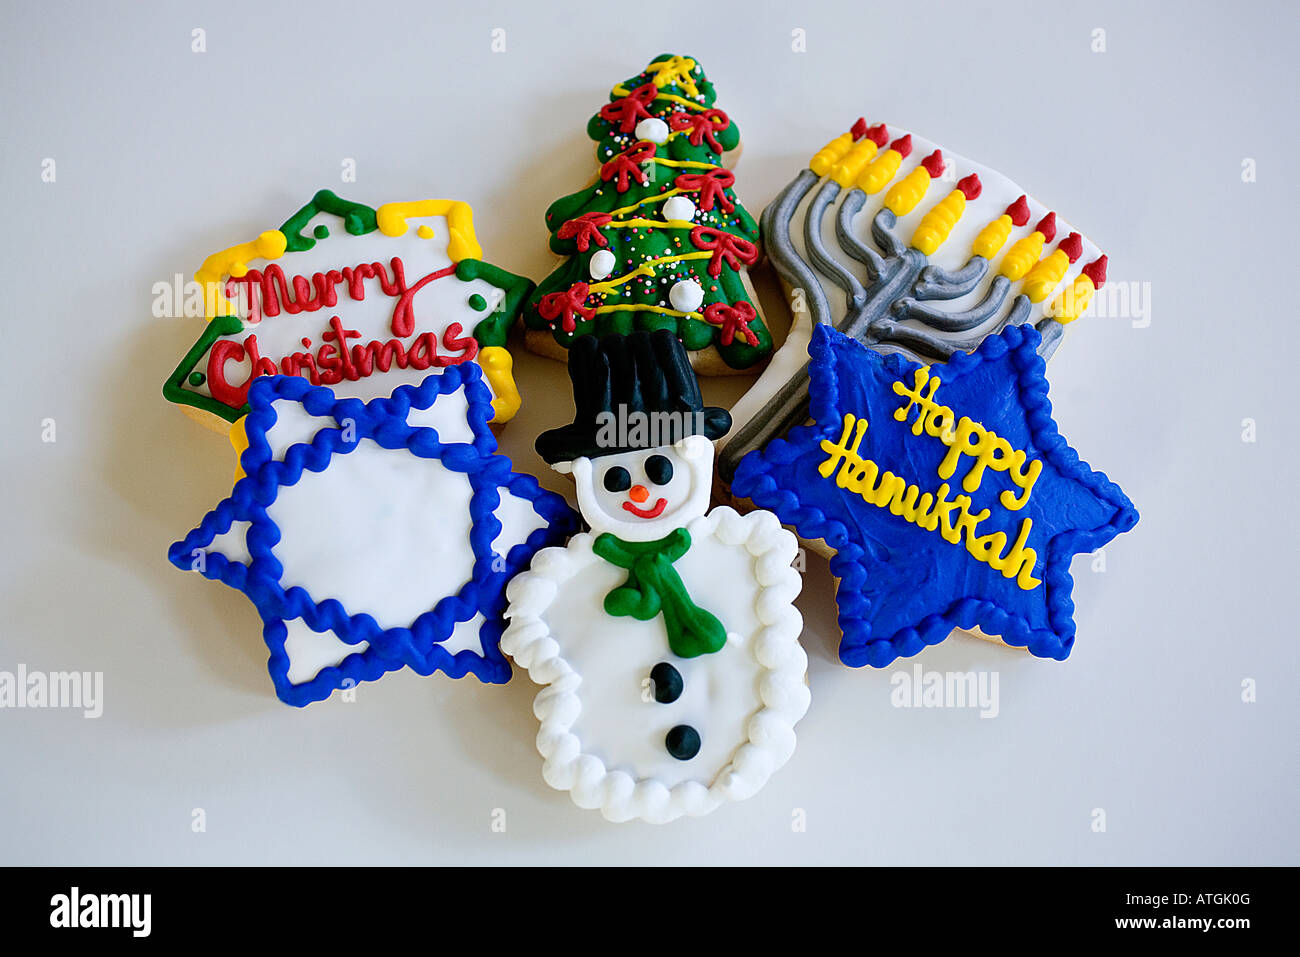 Christmas and Chanukah cookies decoration - Stock Image